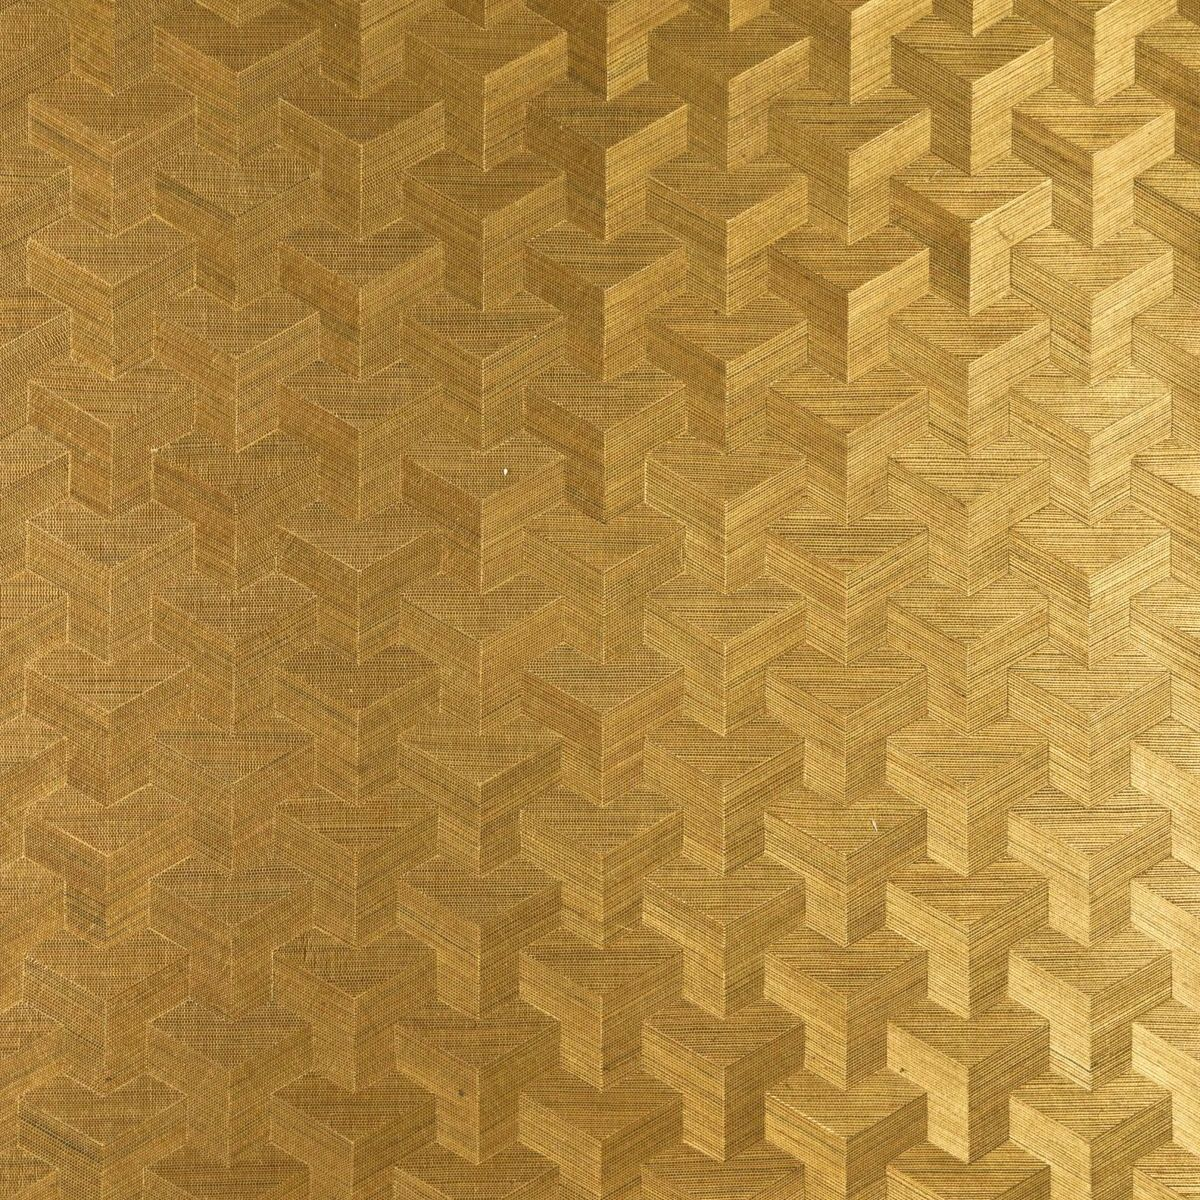 Free download Gold Art Deco Wallpaper Non woven sisal